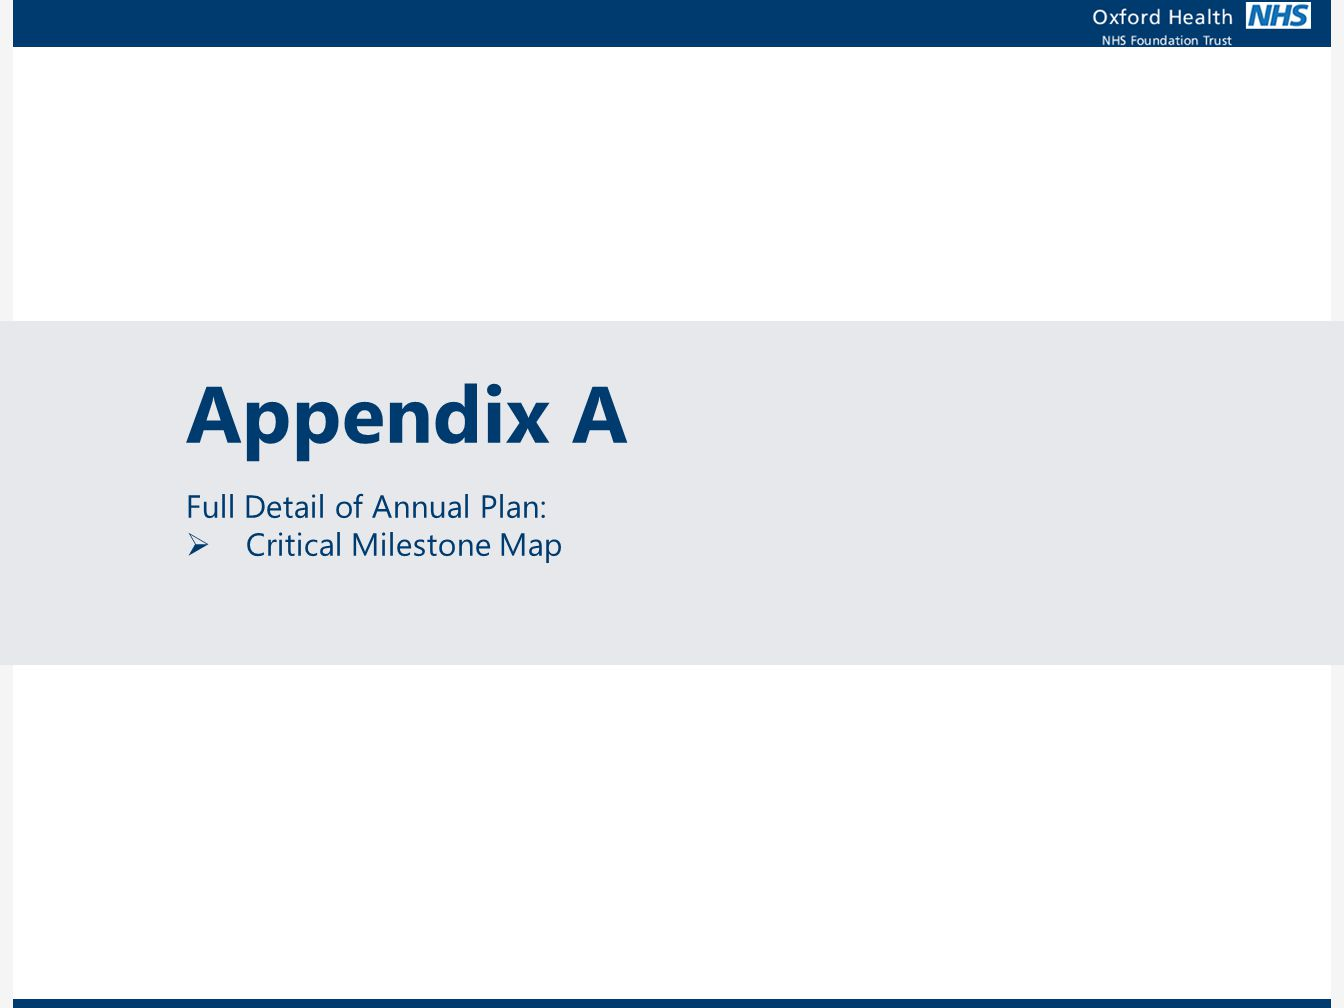 Appendix A Full Detail of Annual Plan: Critical Milestone Map